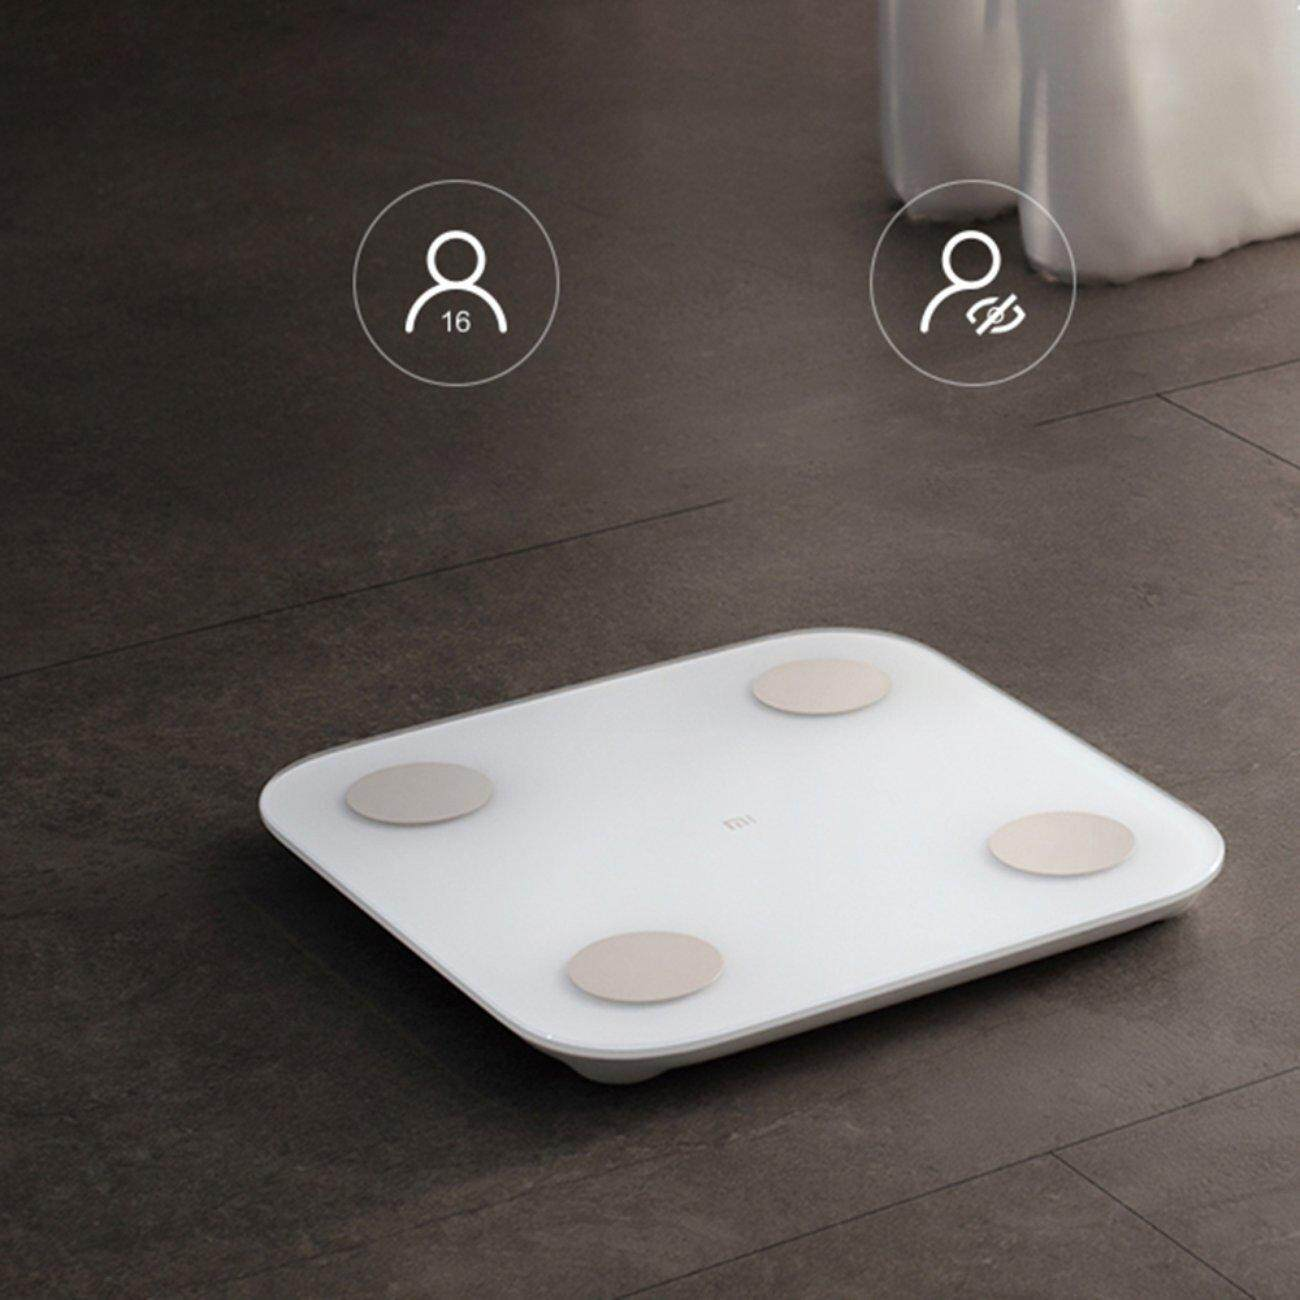 UINN Precision Weight Scale Smart Home Weight Loss Mini Weighing Electronic Scale